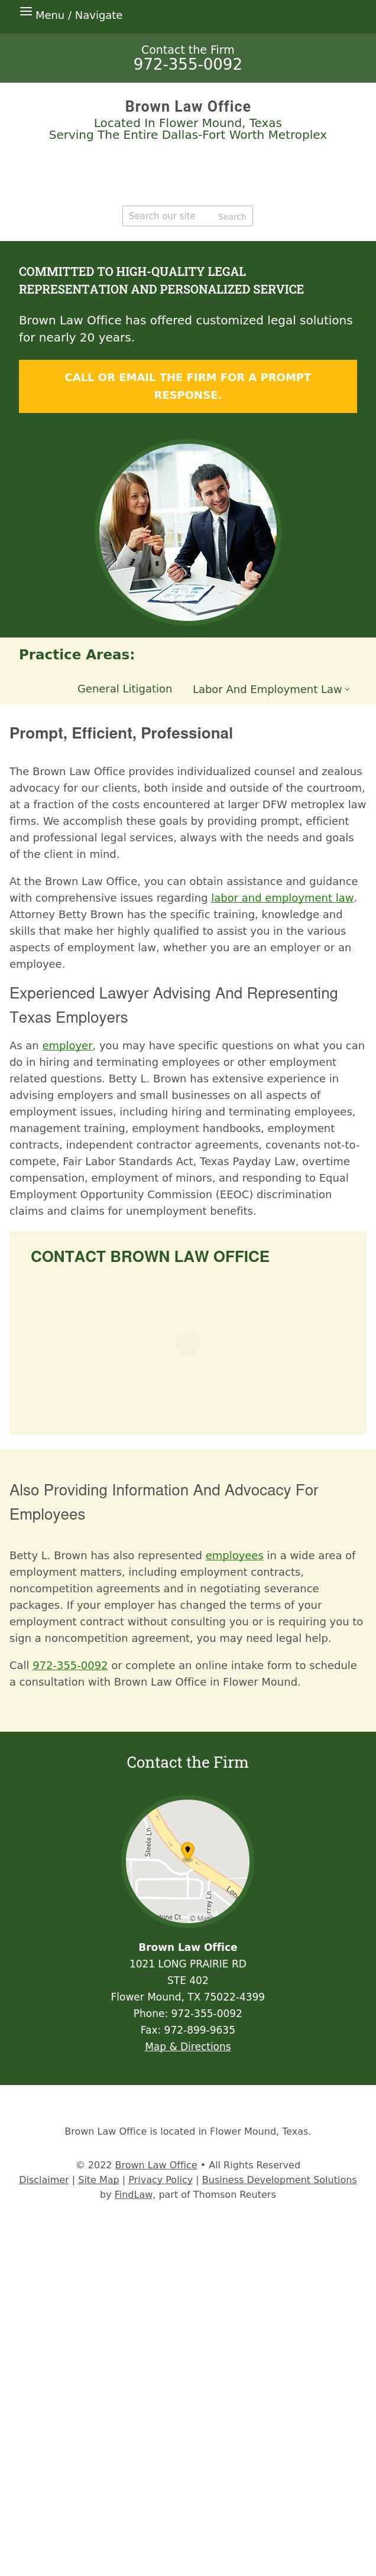 Betty Brown Law Office - Flower Mound TX Lawyers